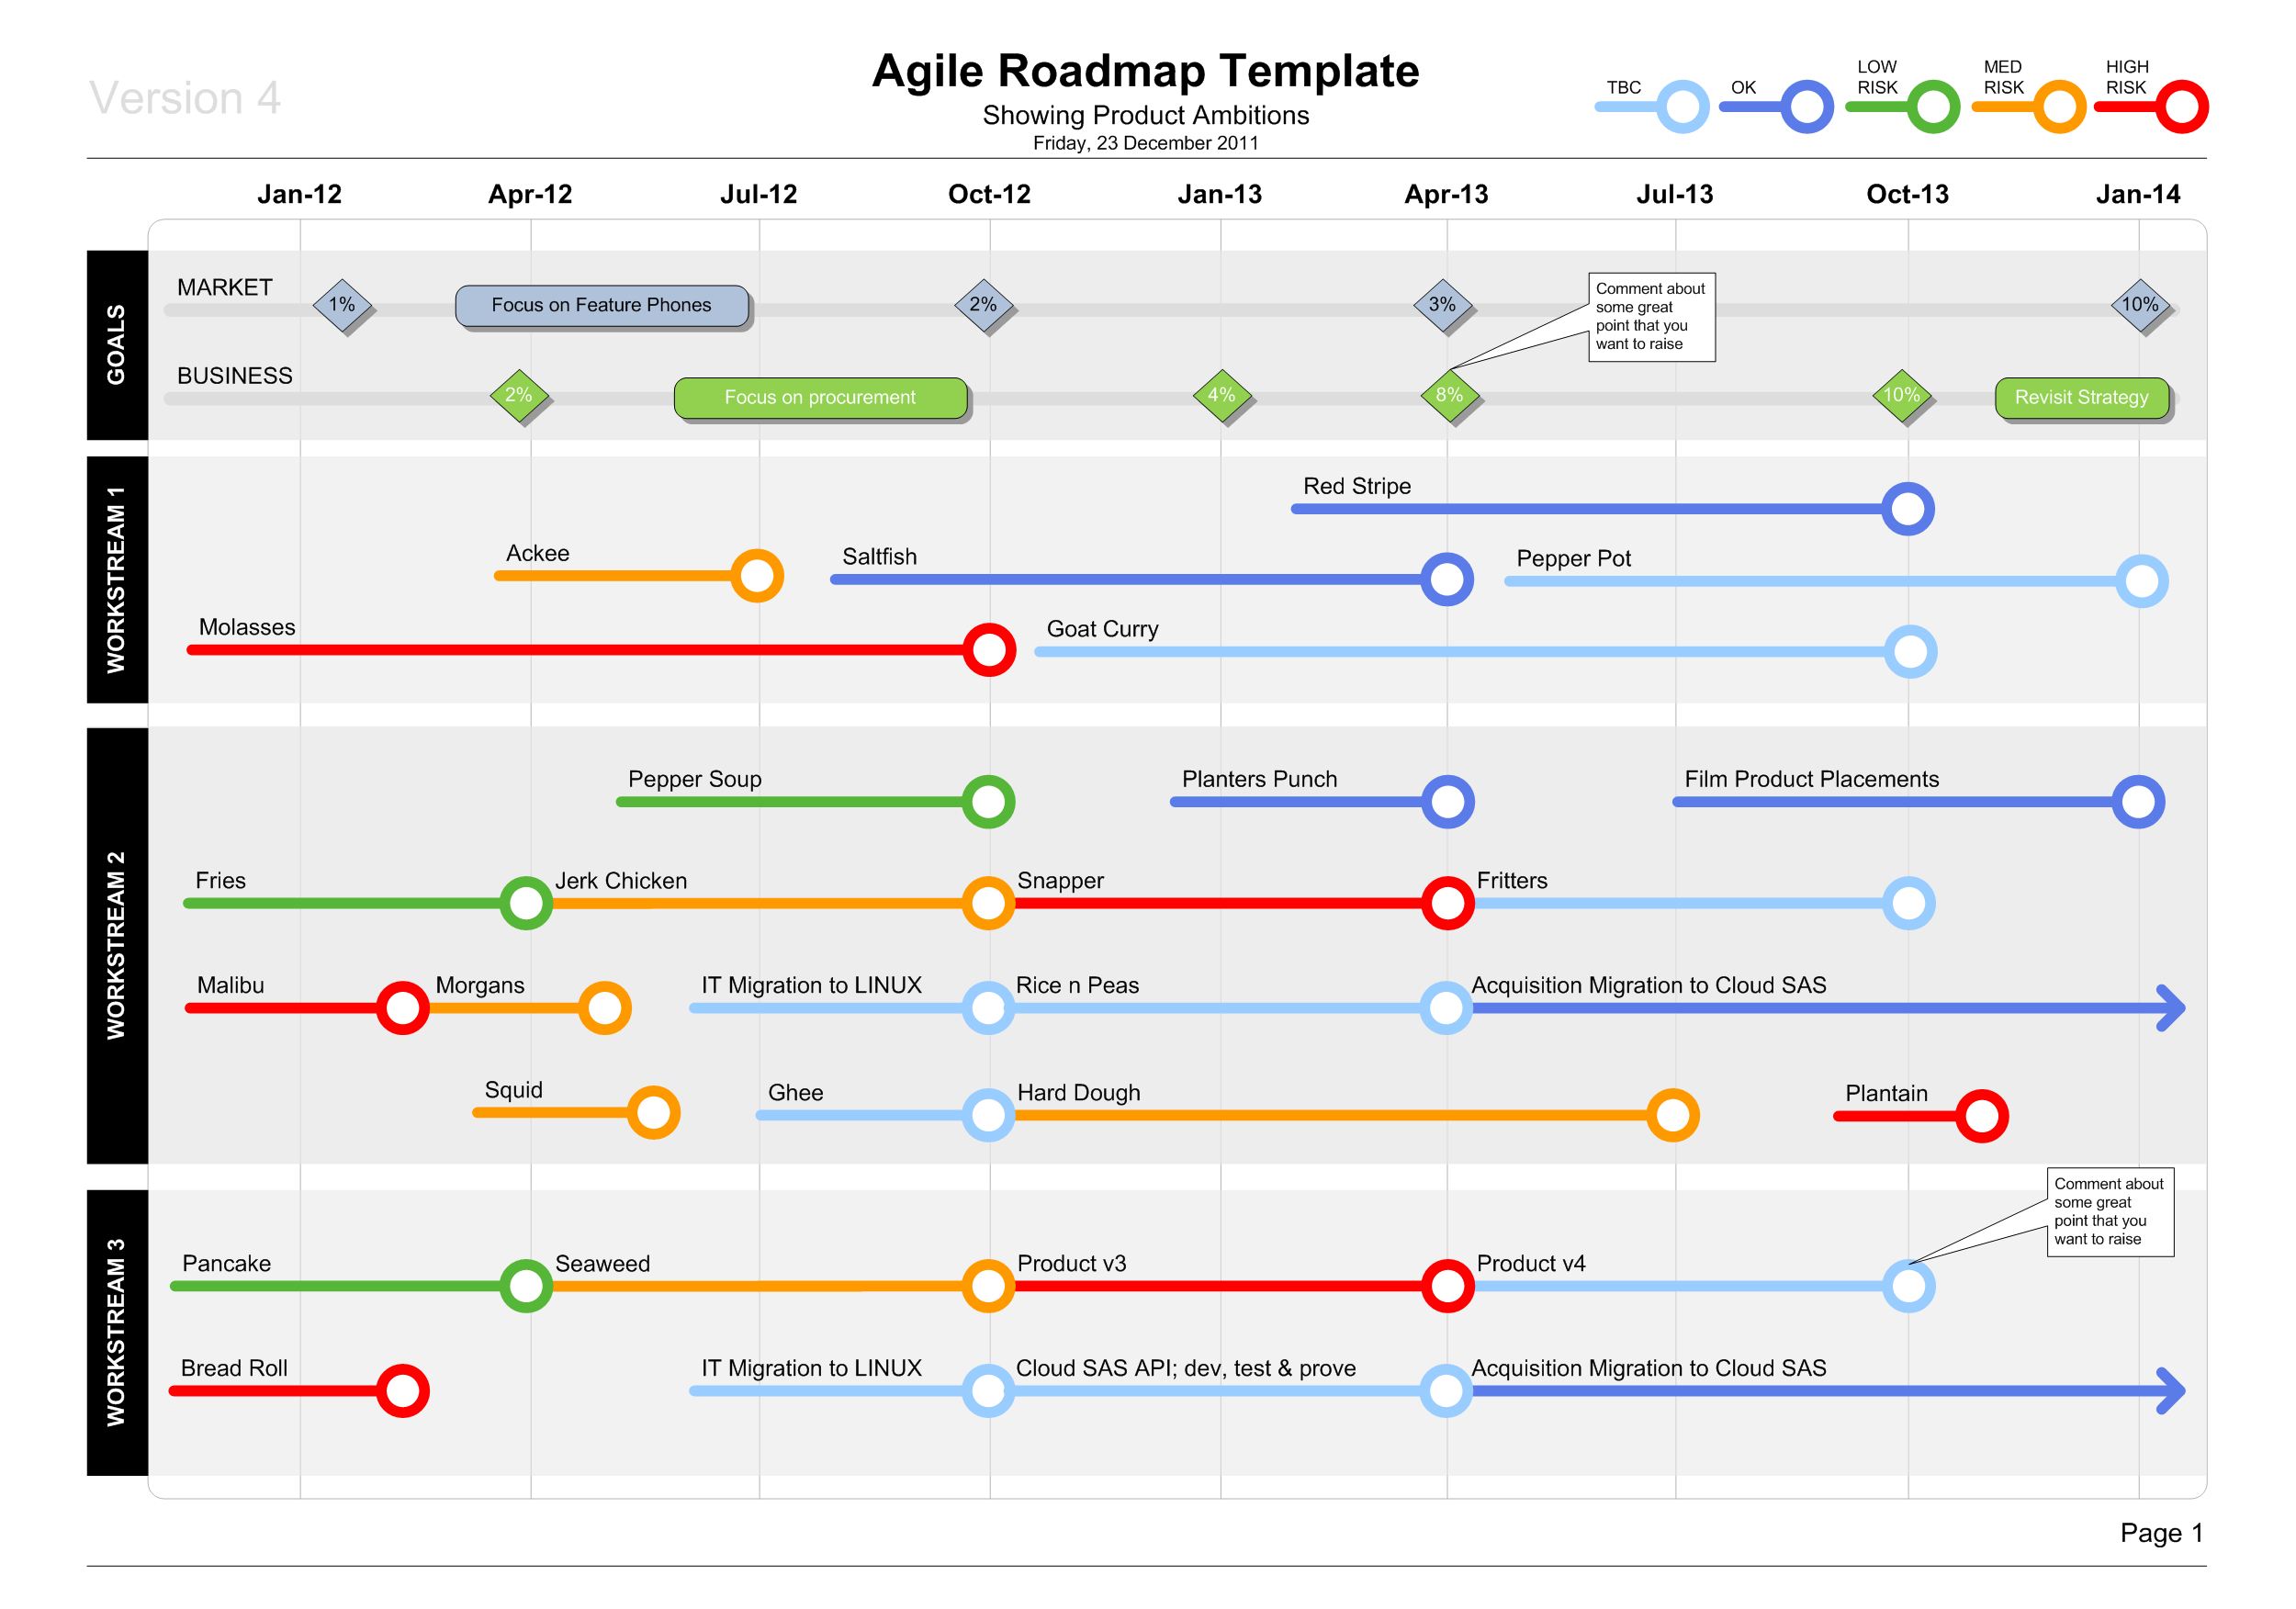 this graphic template conveys an agile roadmap plan over time showing workstream deliveries milestones